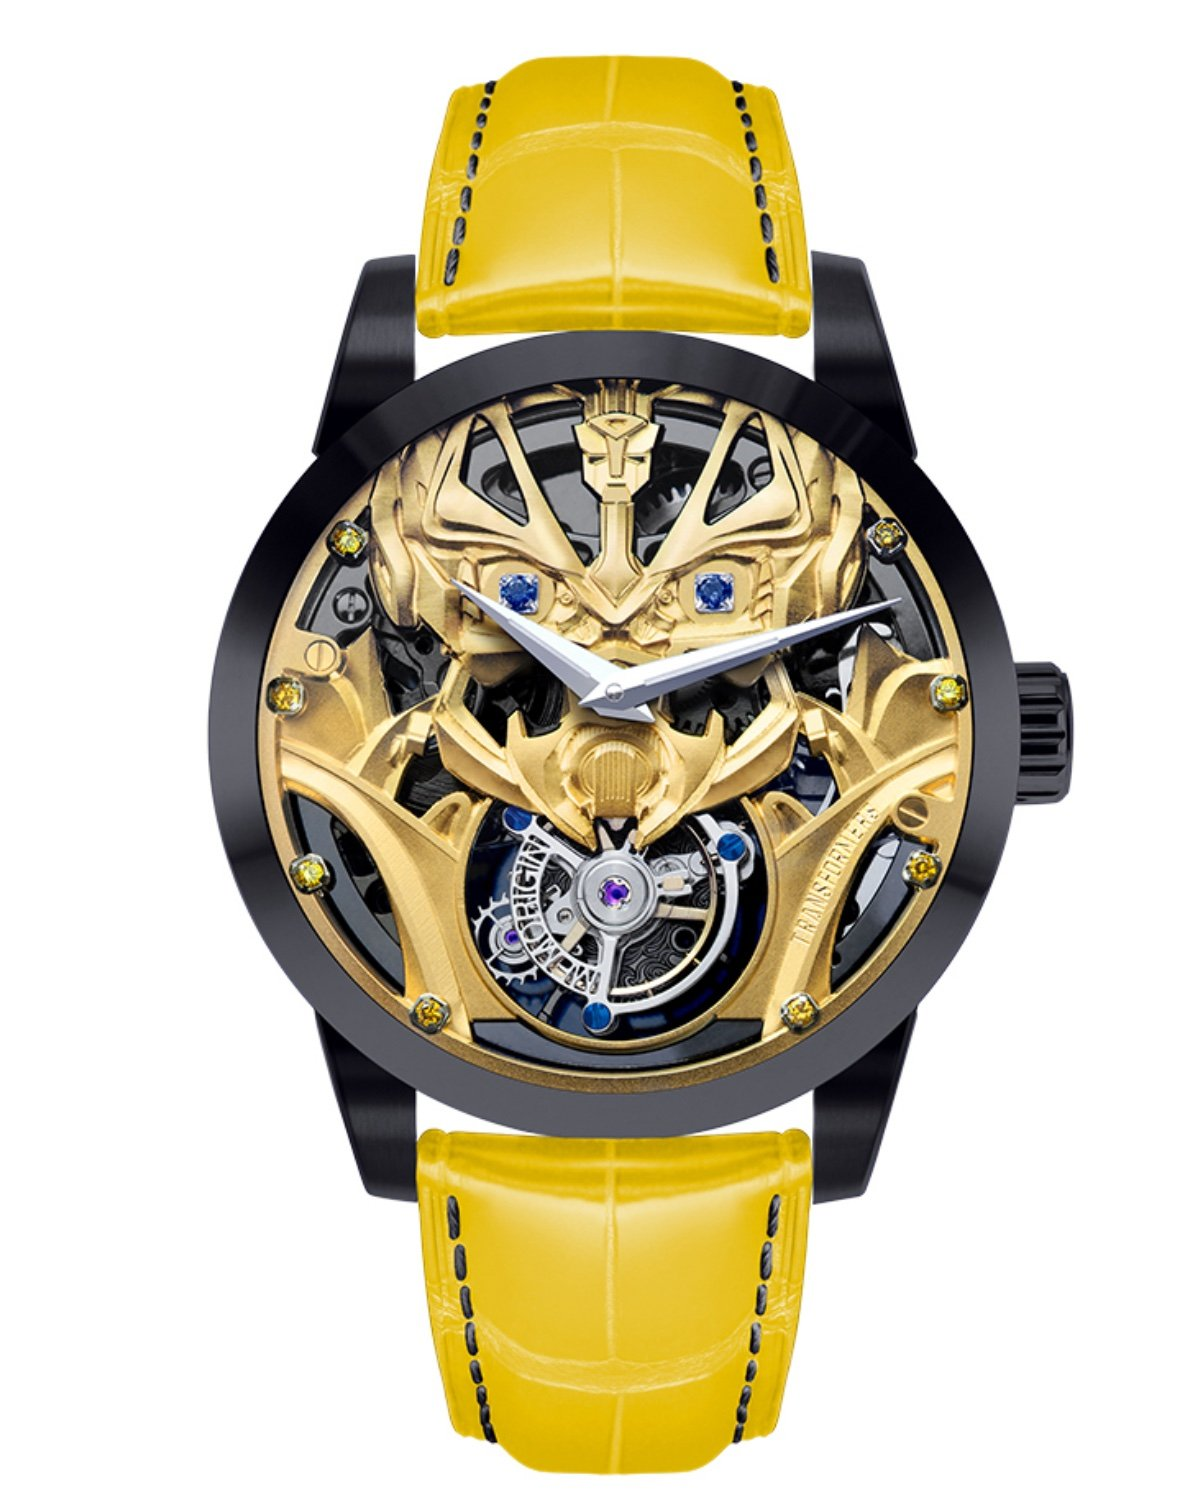 Marvel Transformers Bumblebee 1st version Memorigin Tourbillon Watches Disney Face